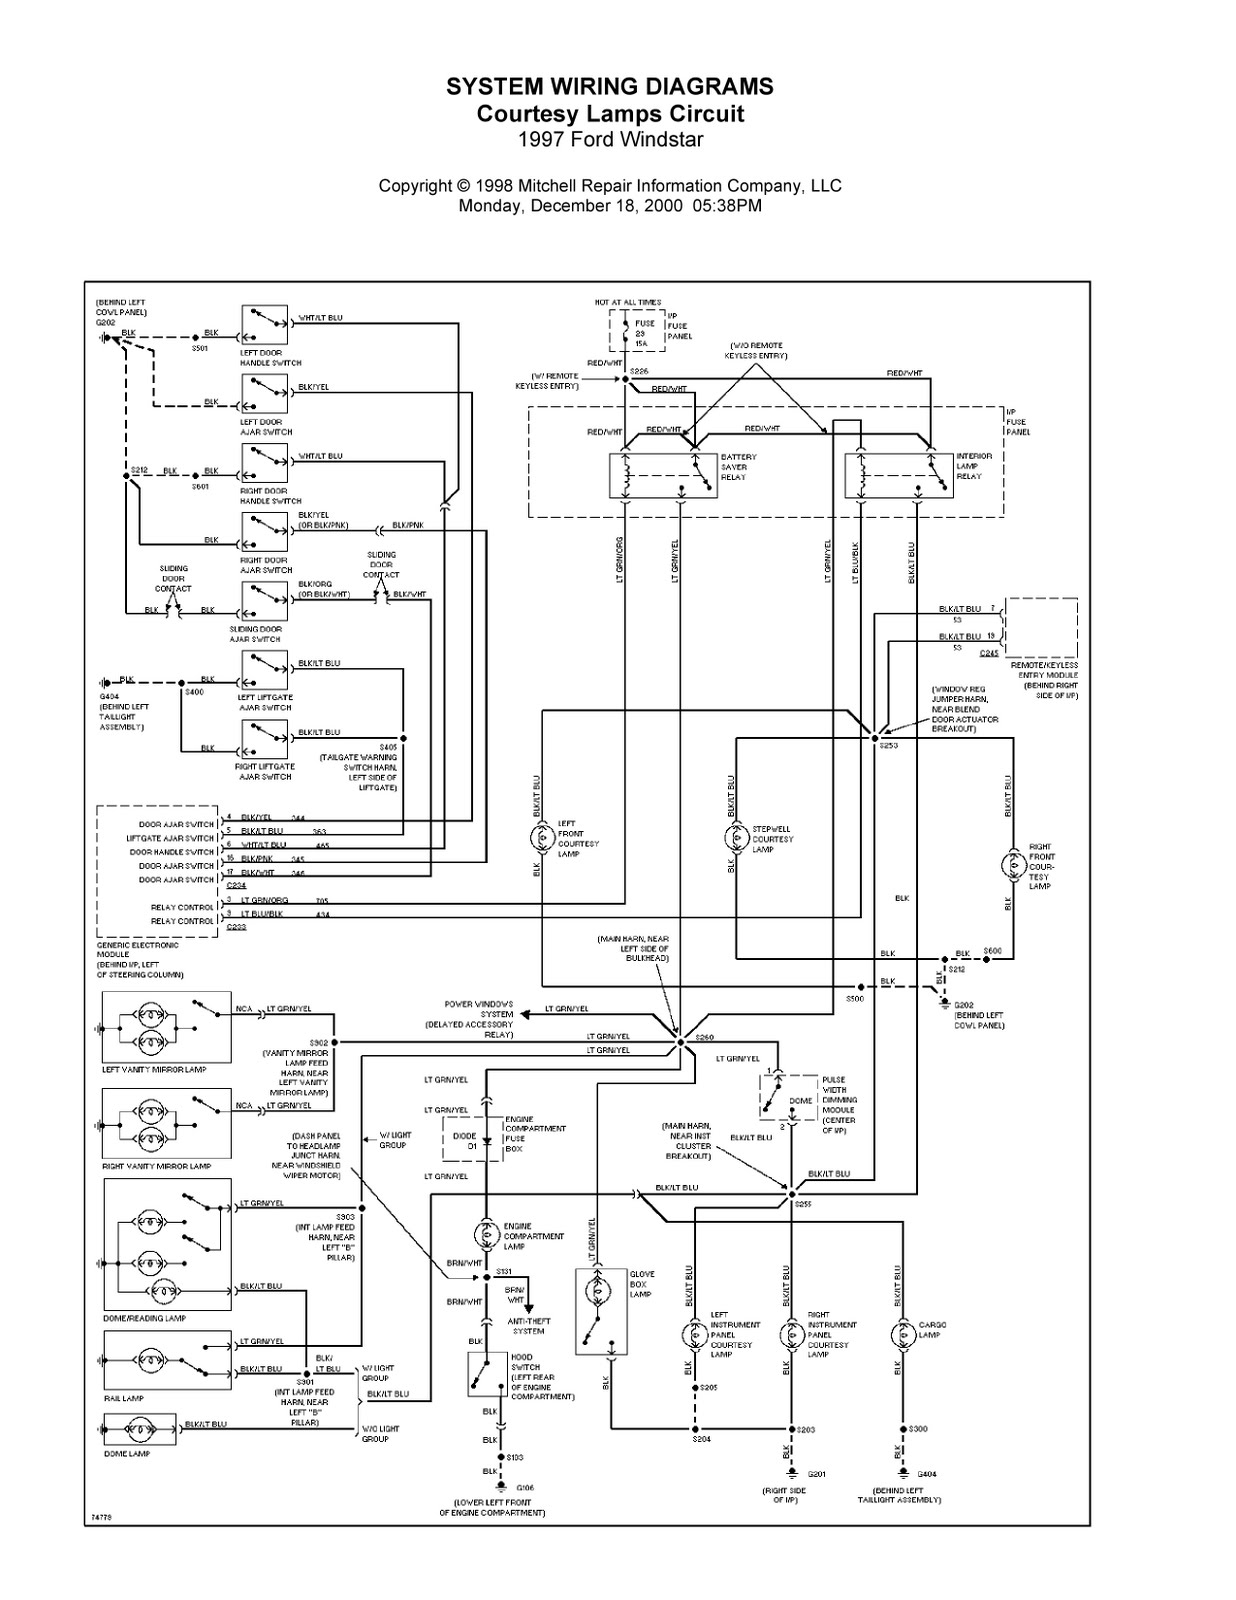 Ford Windstar Electrical Diagram Wiring Schematic 2019 For 2003 1997 Complete System Diagrams 2001